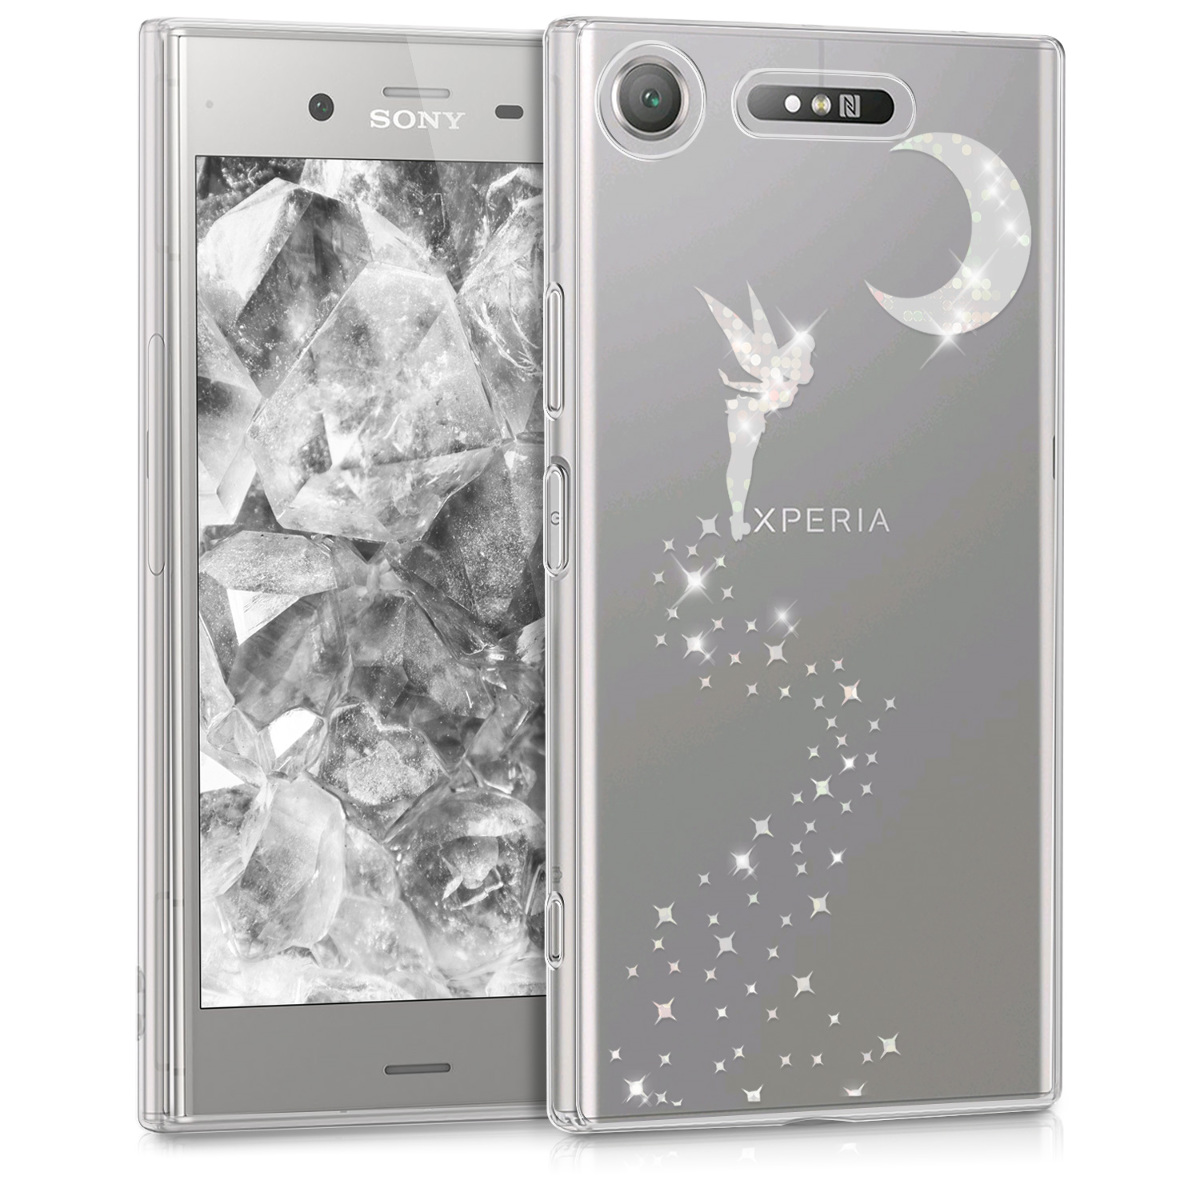 KW Θήκη Σιλικόνης Sony Xperia XZ1 - Silver Fairy / Transparent (44325.03)